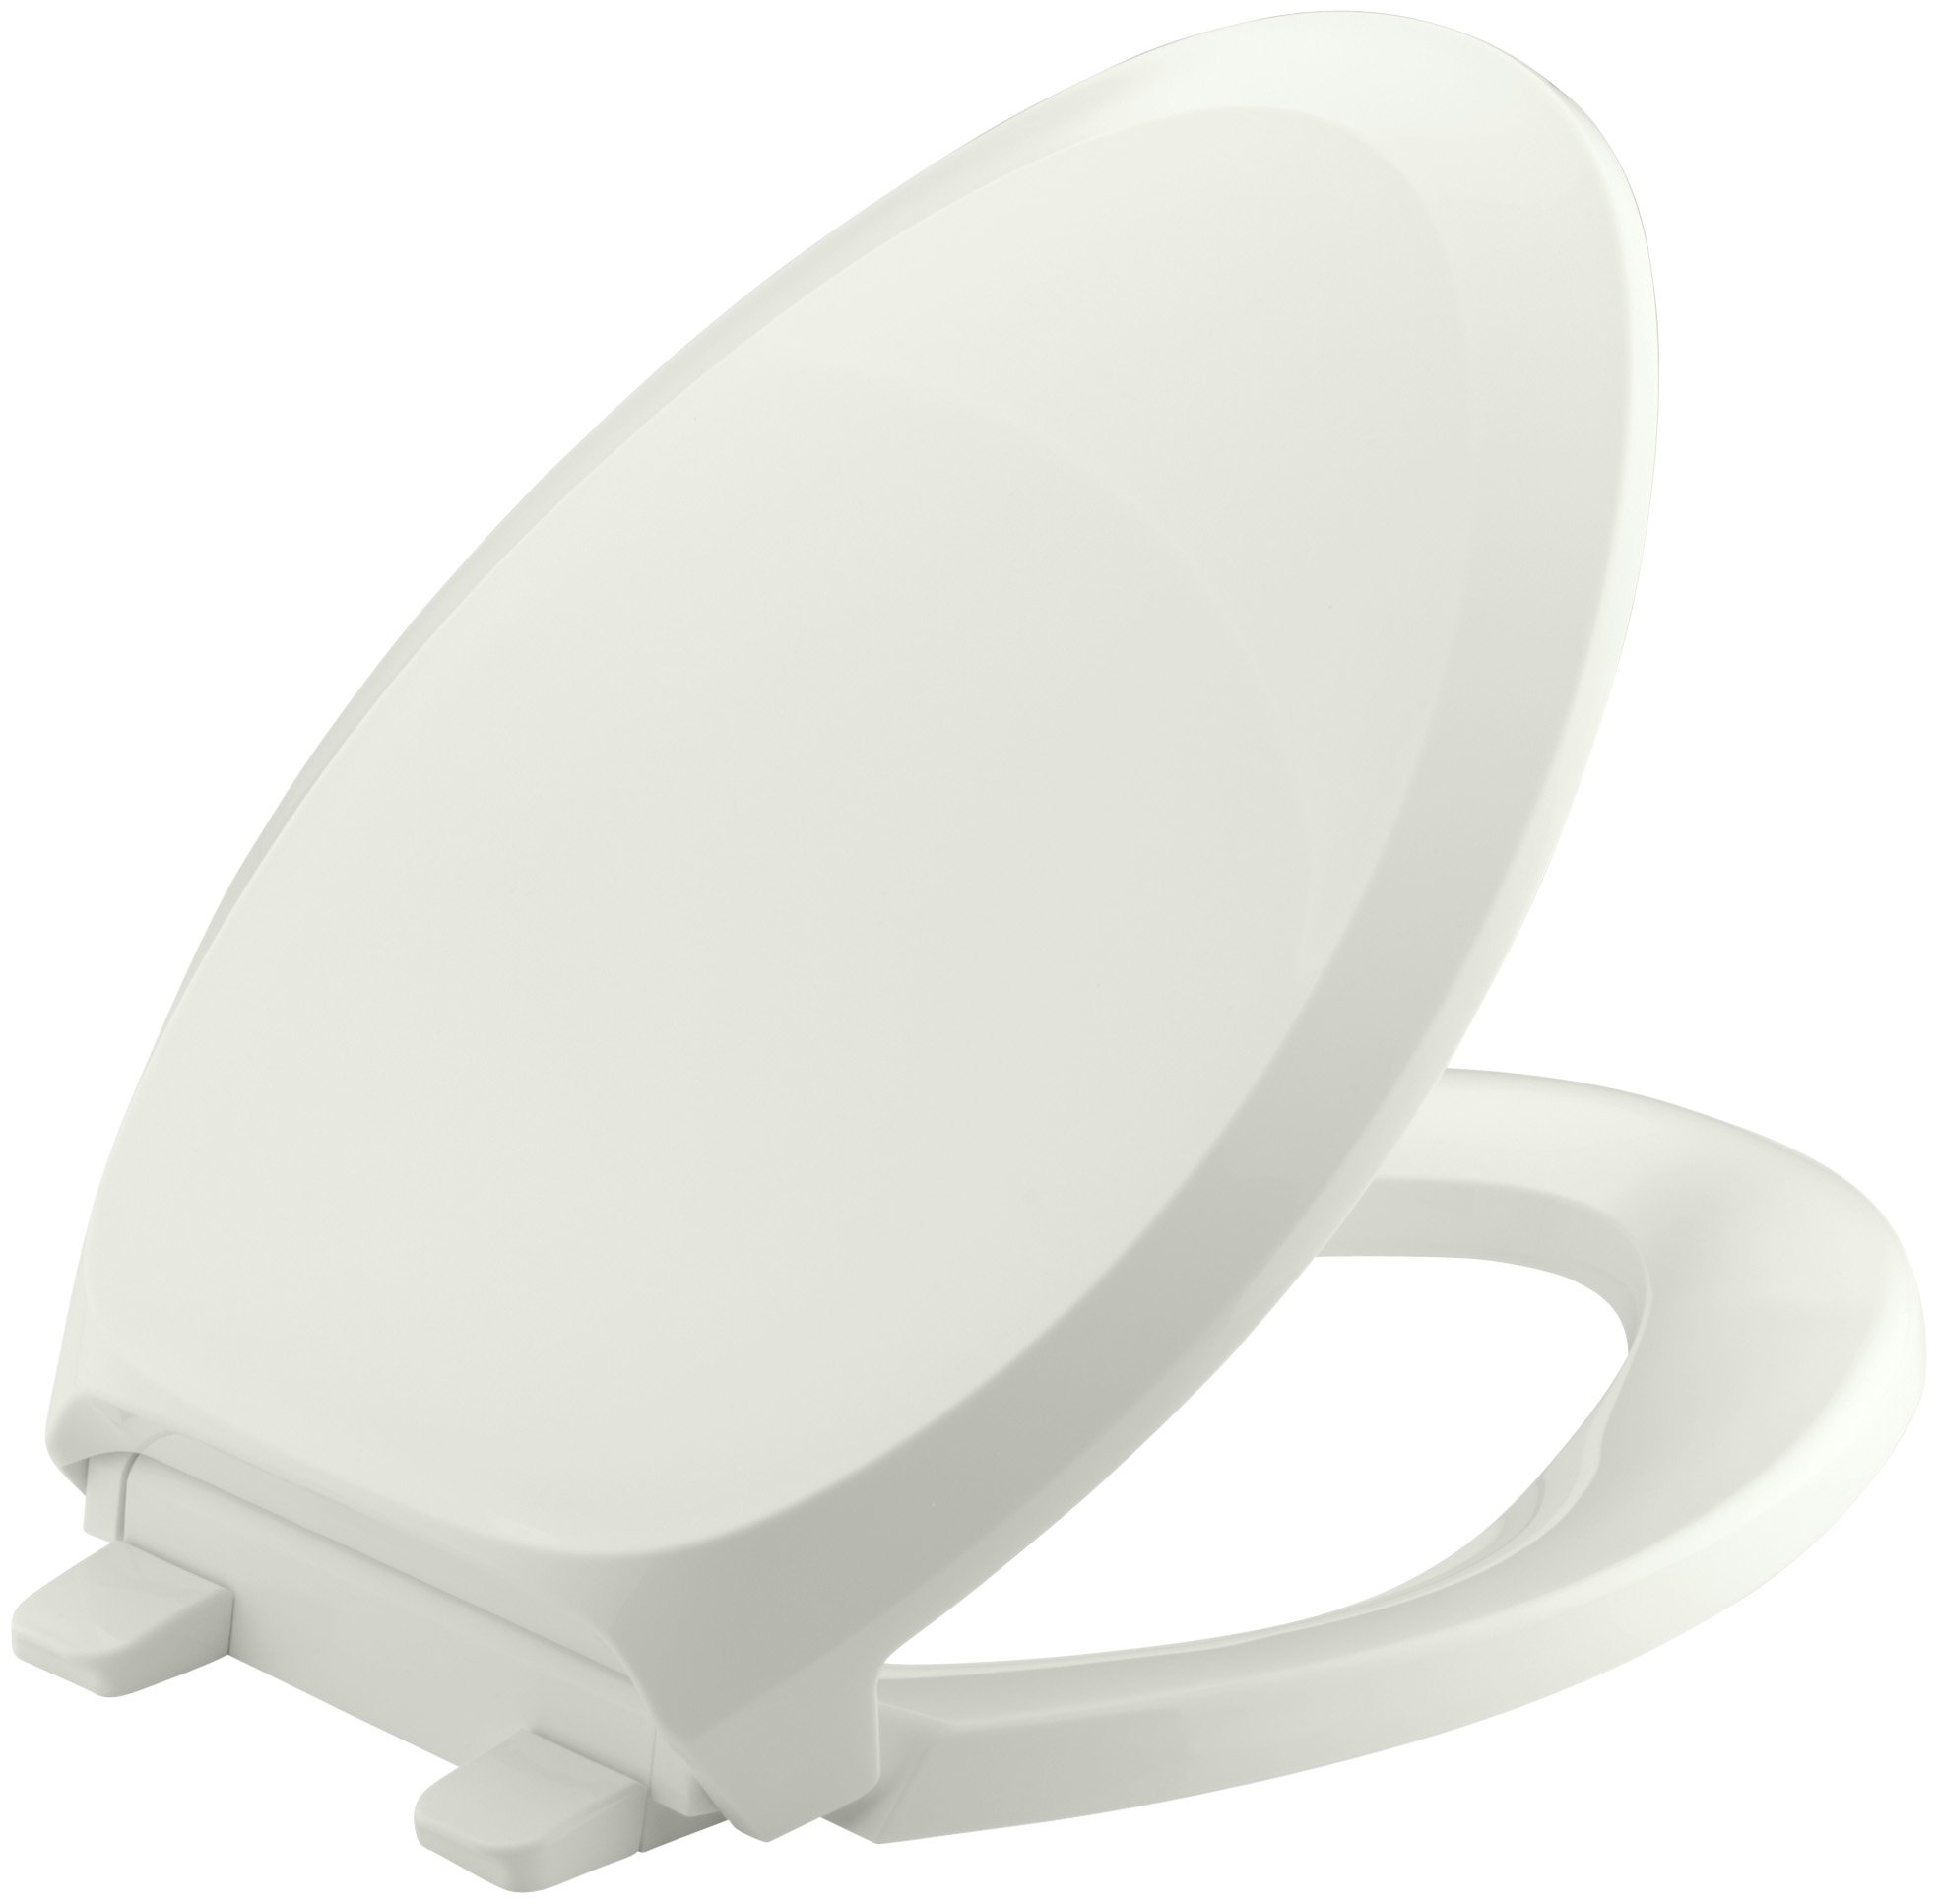 KOHLER K-4713-NY French Curve Quiet-Close with Grip-Tight Bumpers Elongated Toilet Seat, Dune